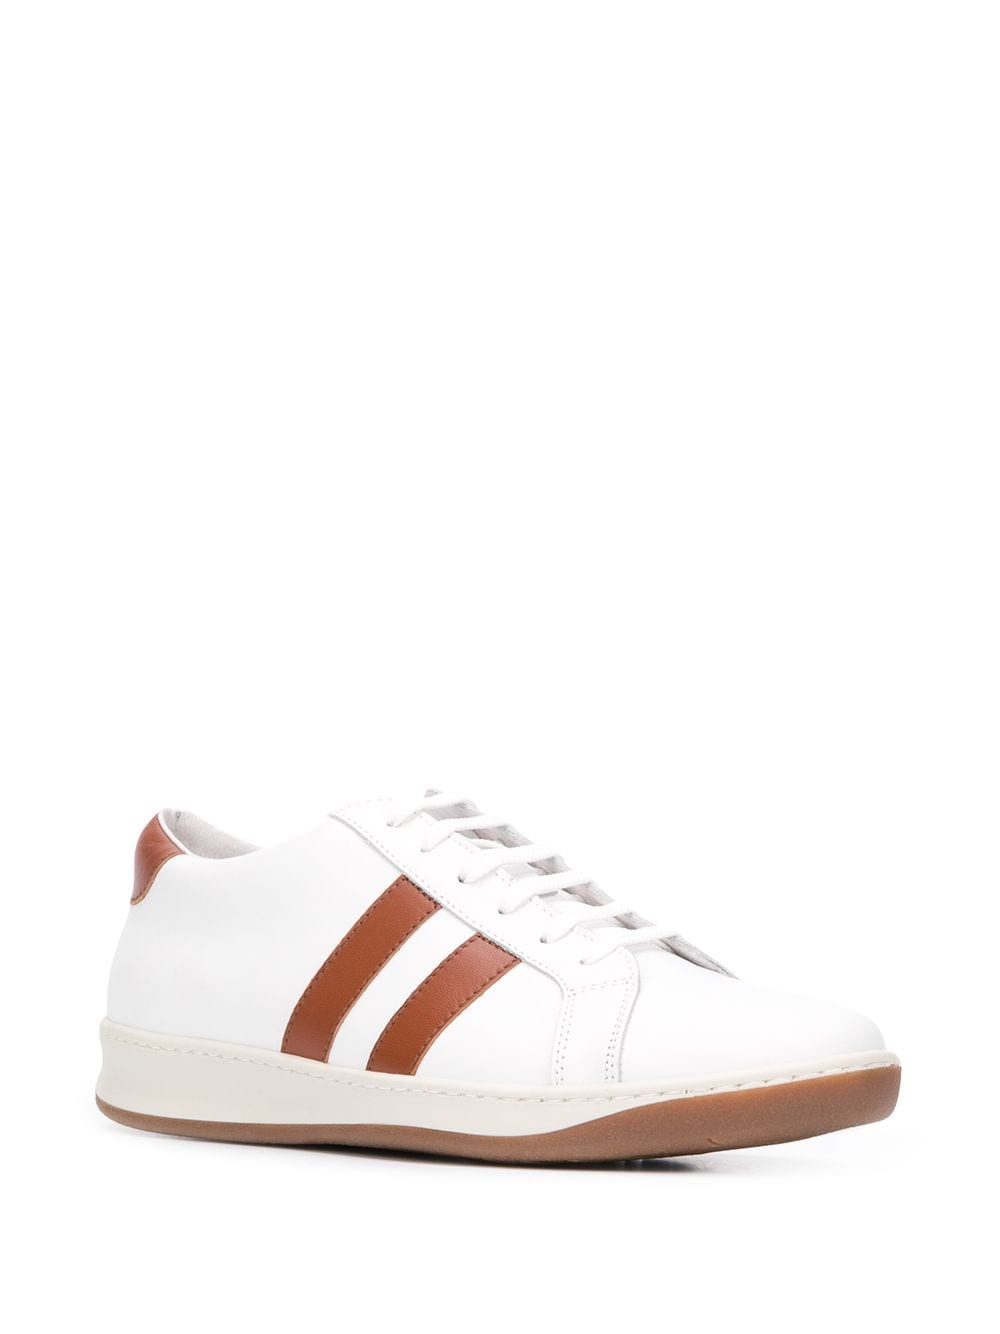 white calf-leather sneakers with side brown detail ELEVENTY |  | A72SCNA04-SCA0A00901